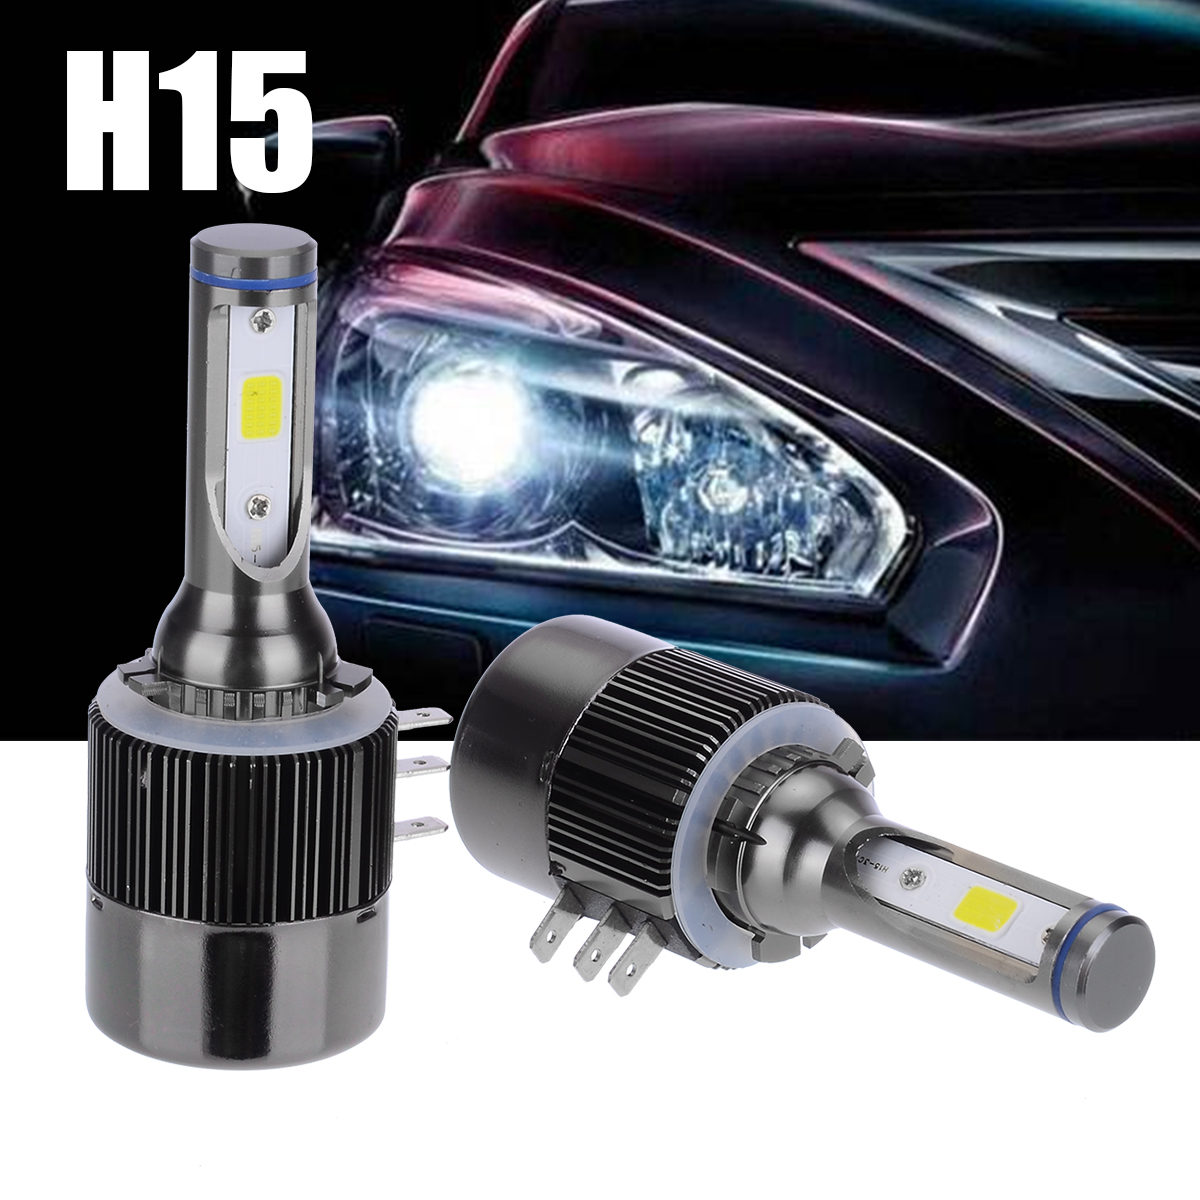 2Pcs H15 110W 26000LM COB LED Headlight 9V-32V Bulb 6000K High Quality Fog Light Lamps Bulbs For Audi Benz